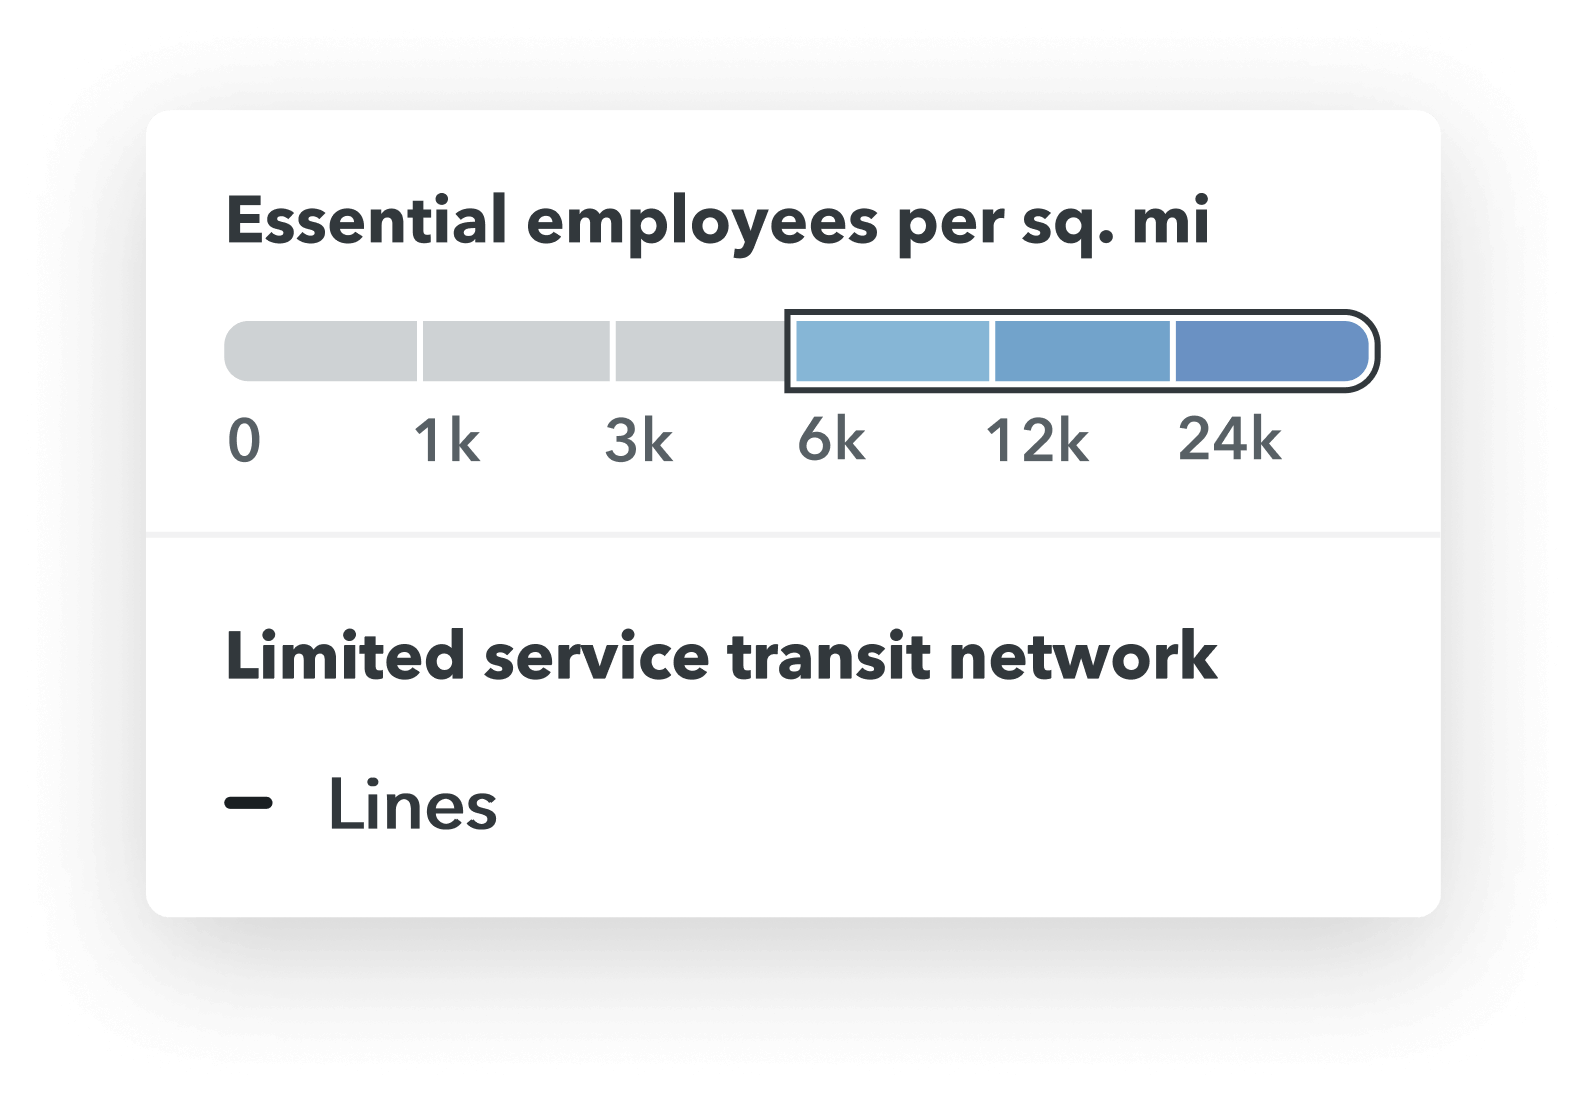 Essential employees per sq. mile